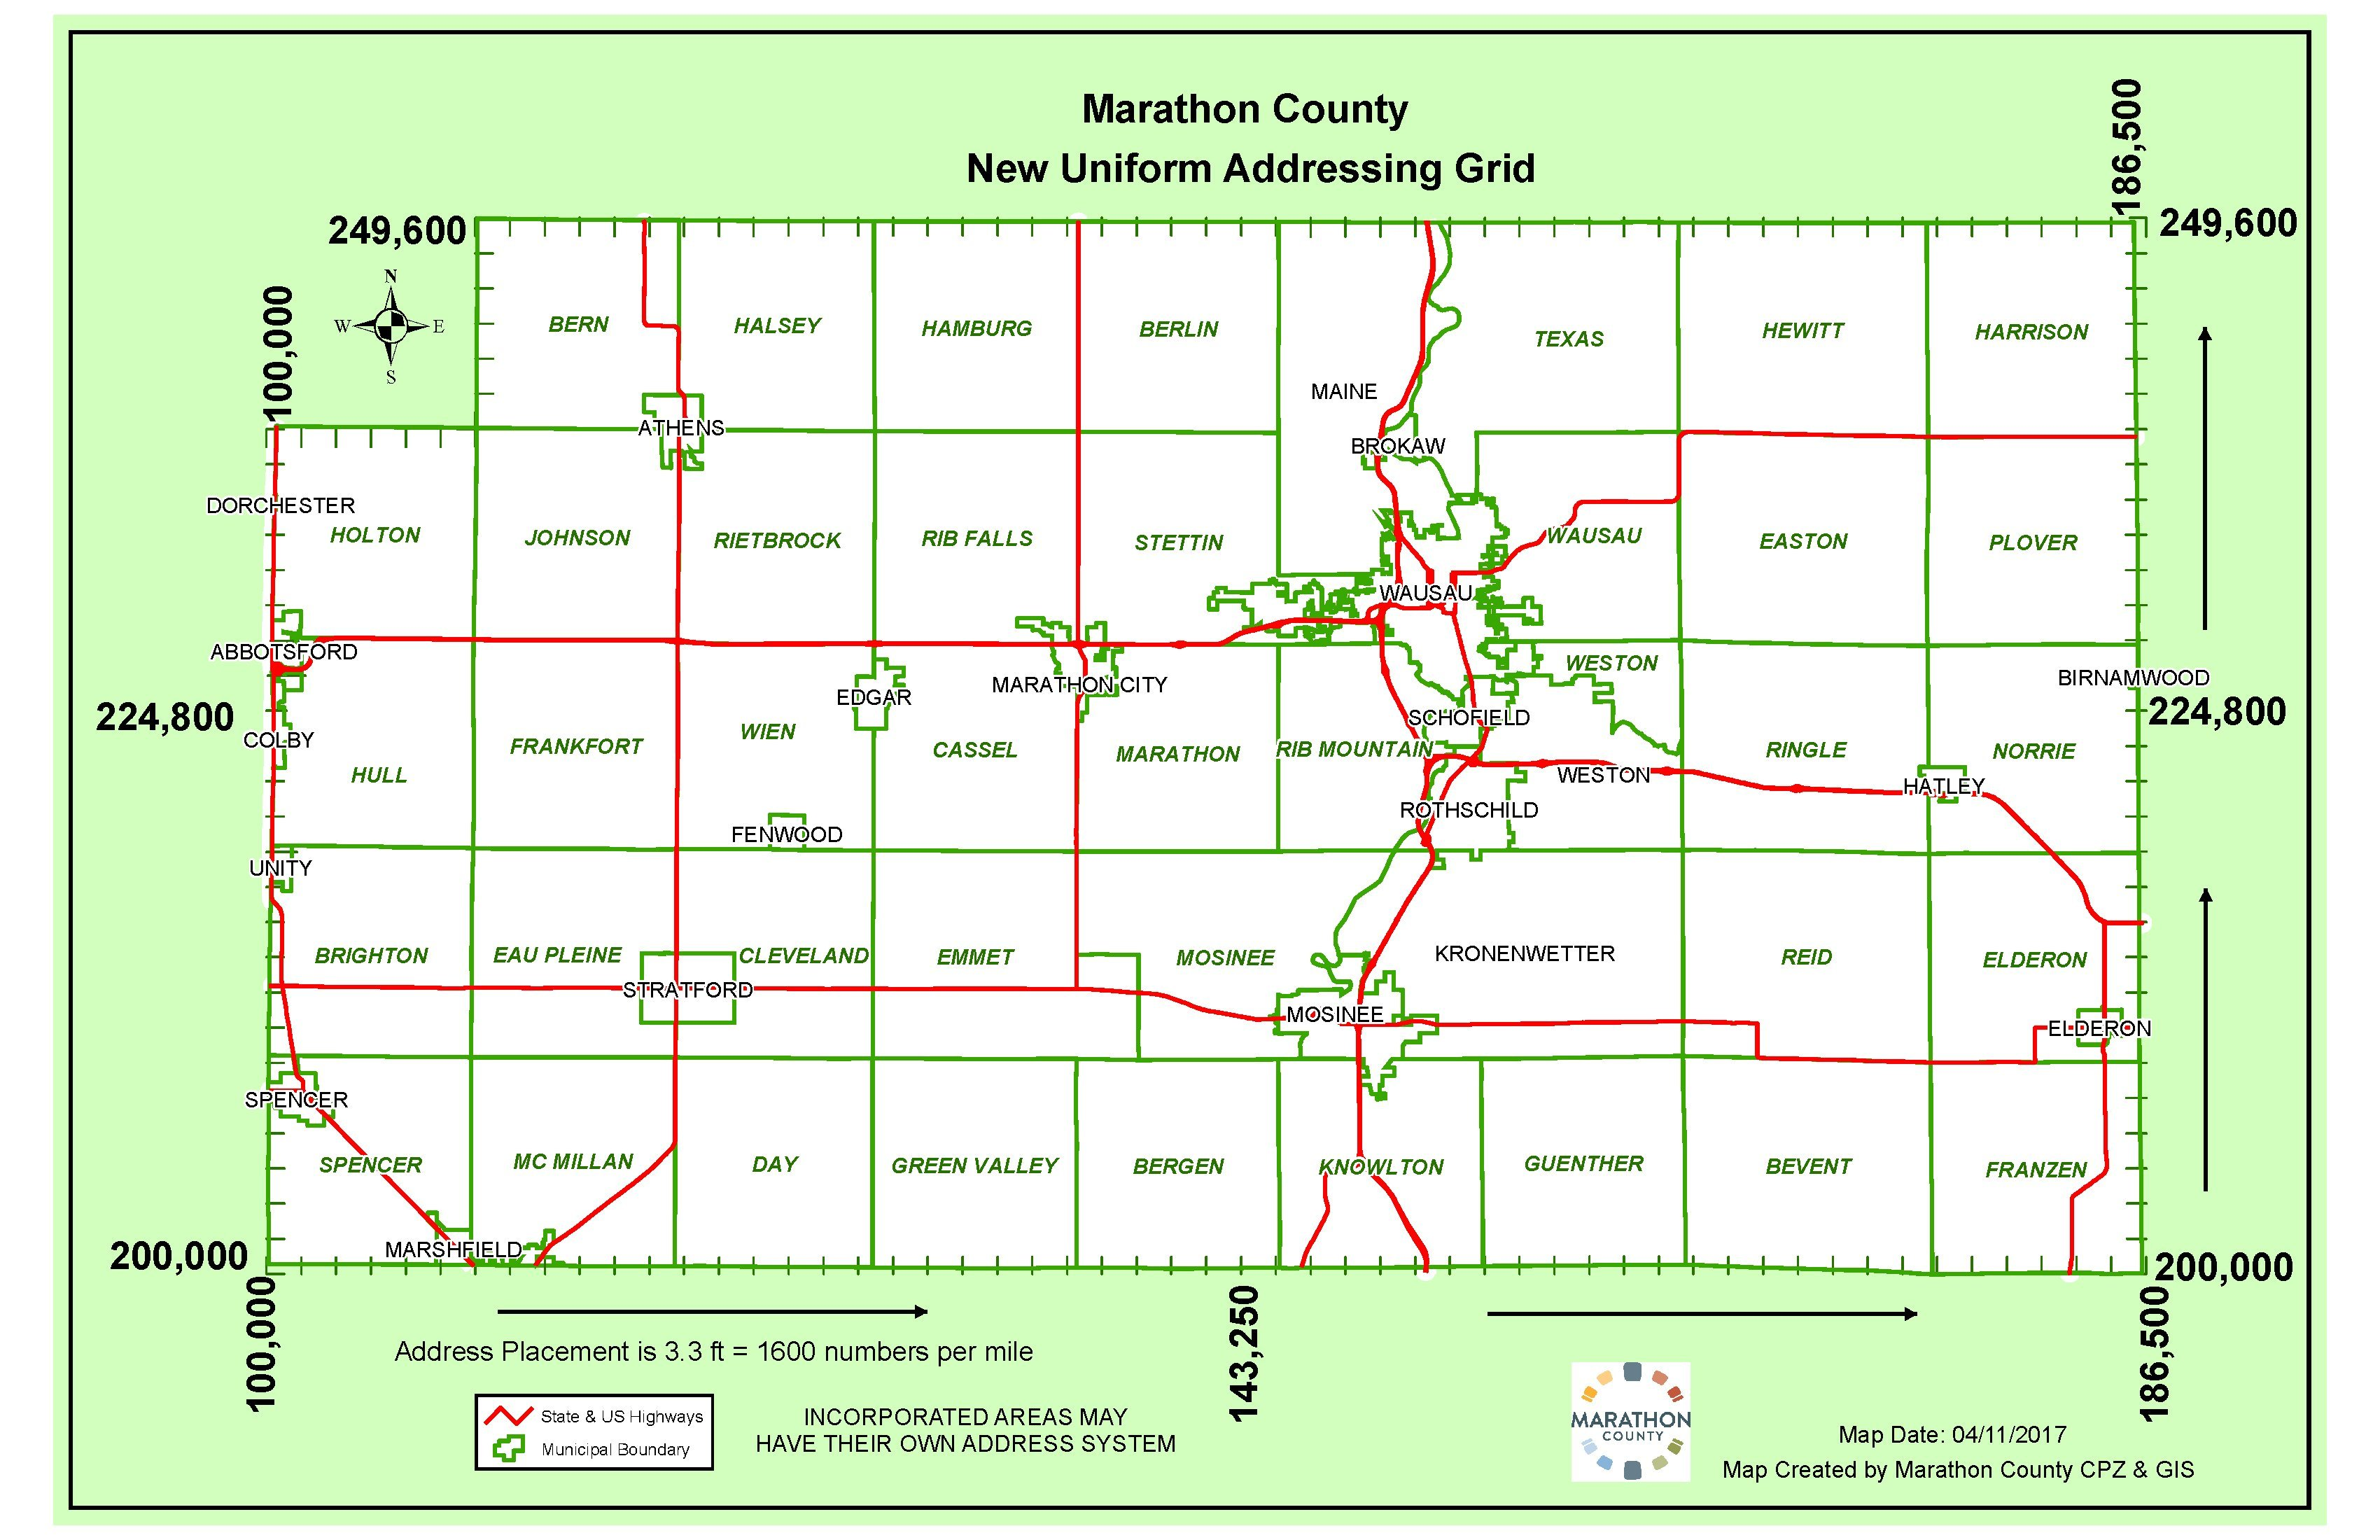 Marathon County NEW Uniform Addressing Grid (as of 4-11-2017)